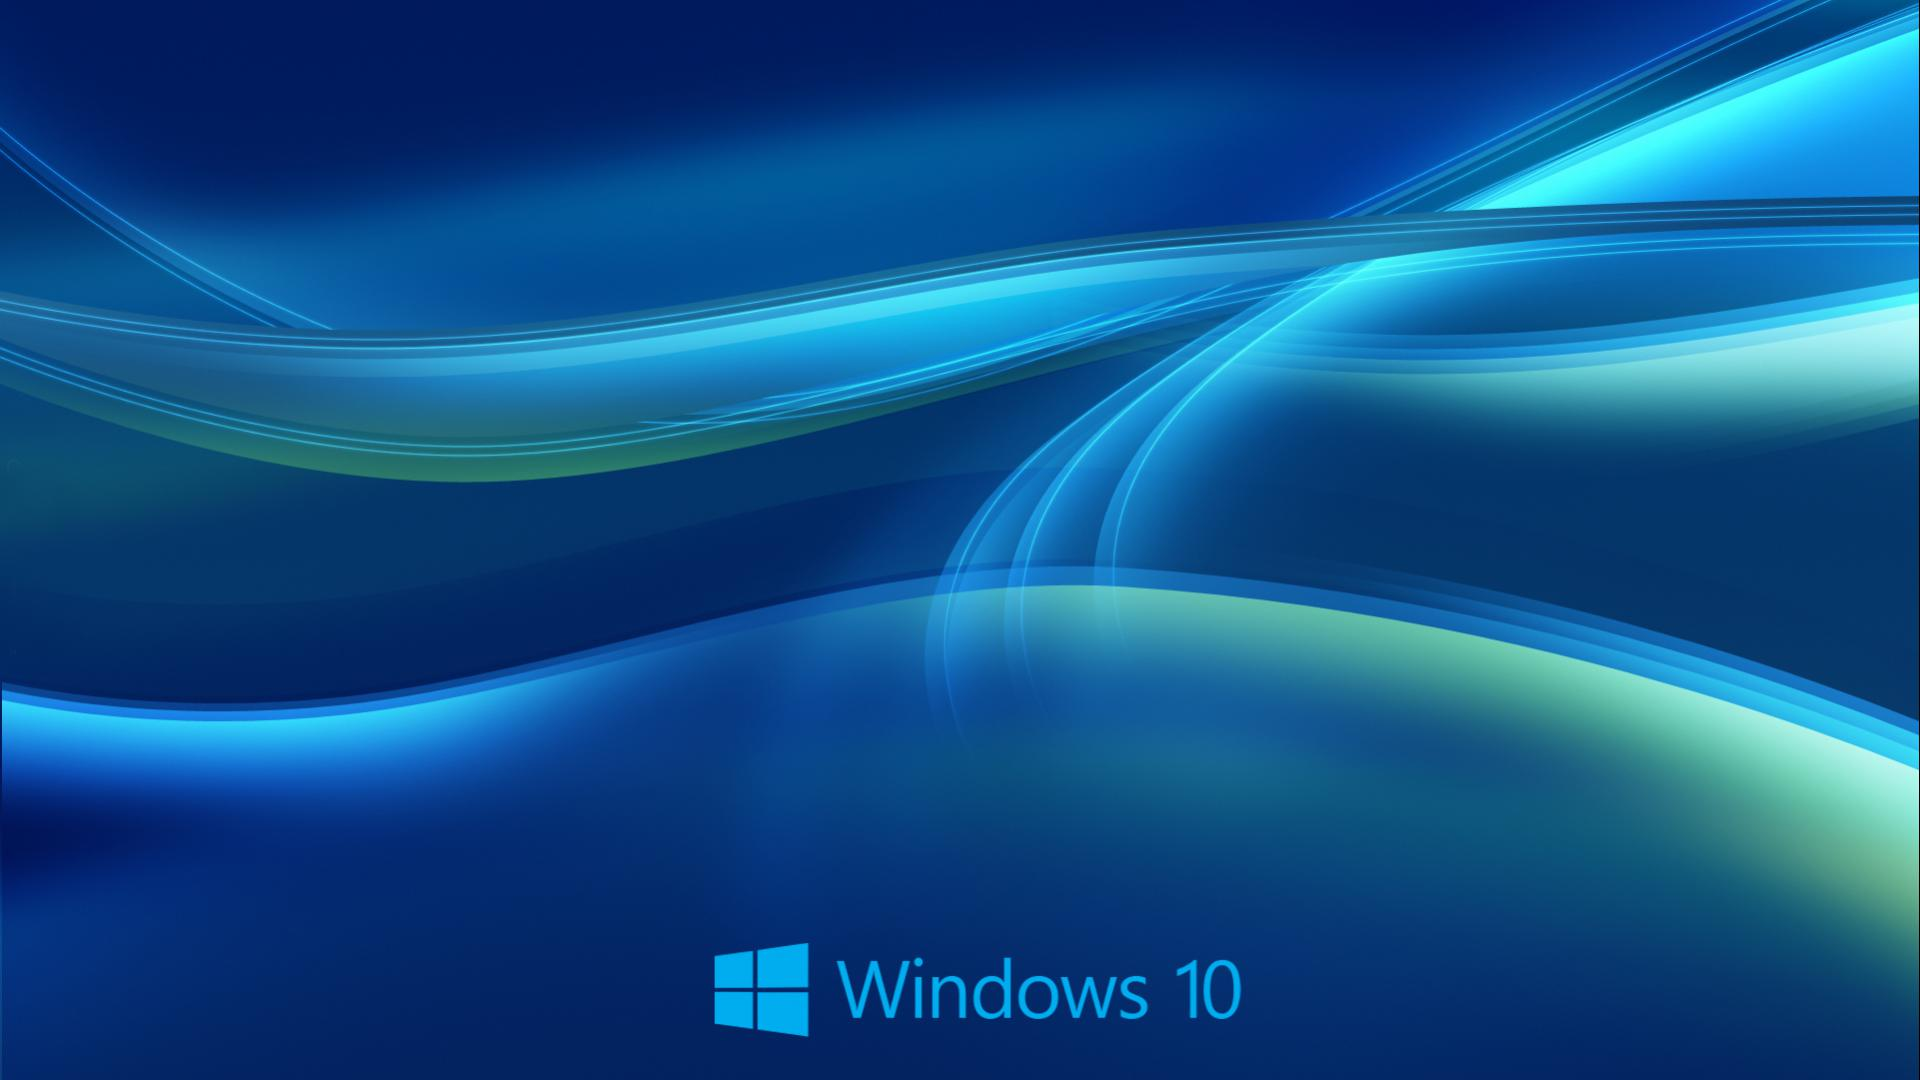 Windows 10 Wallpaper HD in Blue Abstract with New Logo HD Wallpapers 1920x1080